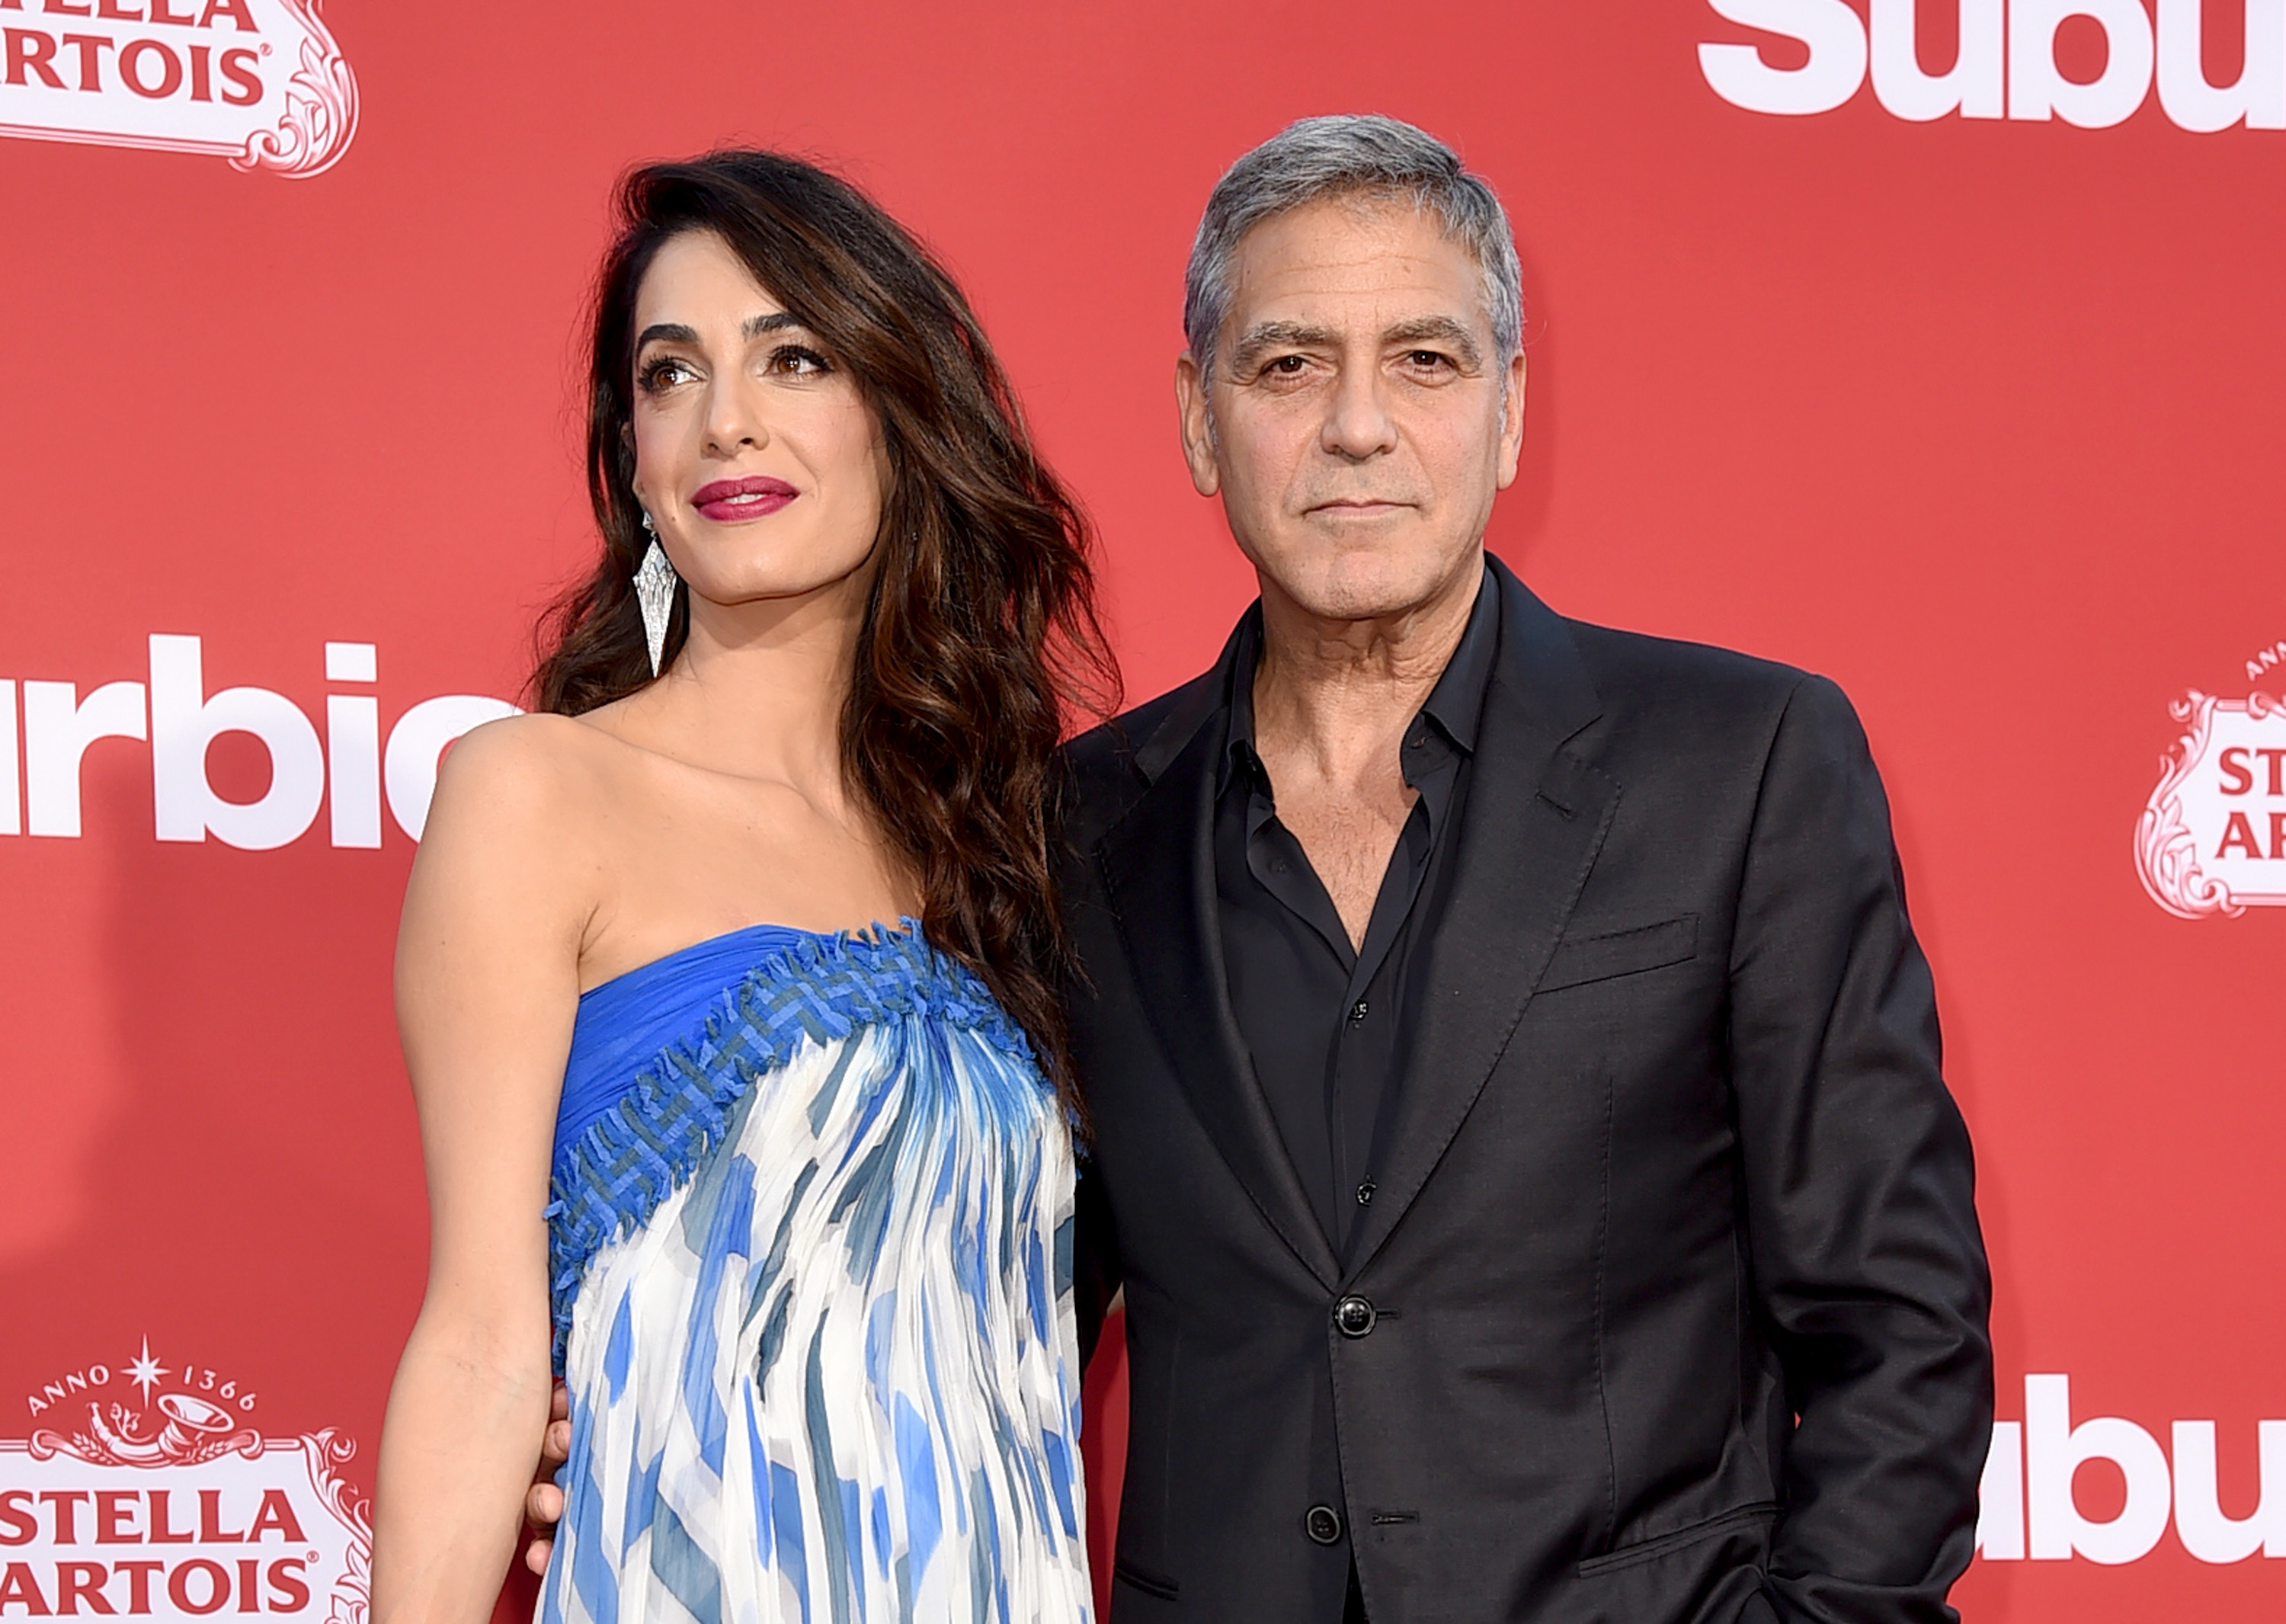 LOS ANGELES, CA - OCTOBER 22:  Executive producer George Clooney (R) and his wife Amal Clooney arrive at the premiere of Paramount Pictures'  Suburbicon  at the Village Theatre on October 22, 2017 in Los Angeles, California.  (Photo by Kevin Winter/Getty Images)